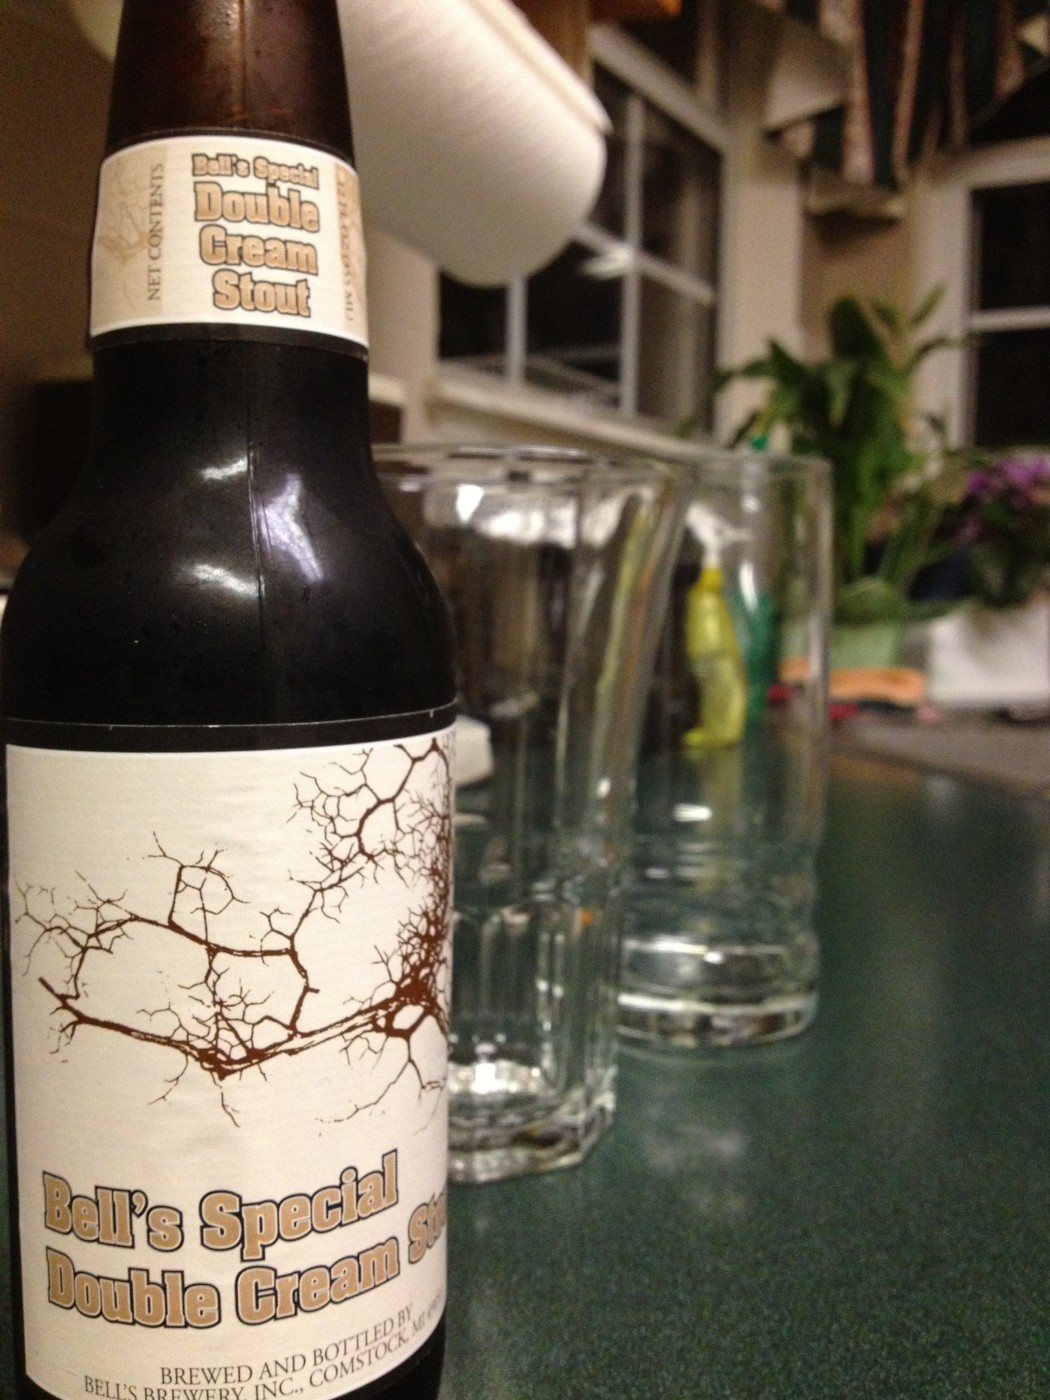 One Minute Beer Review – Bell's Special Double Cream Stout